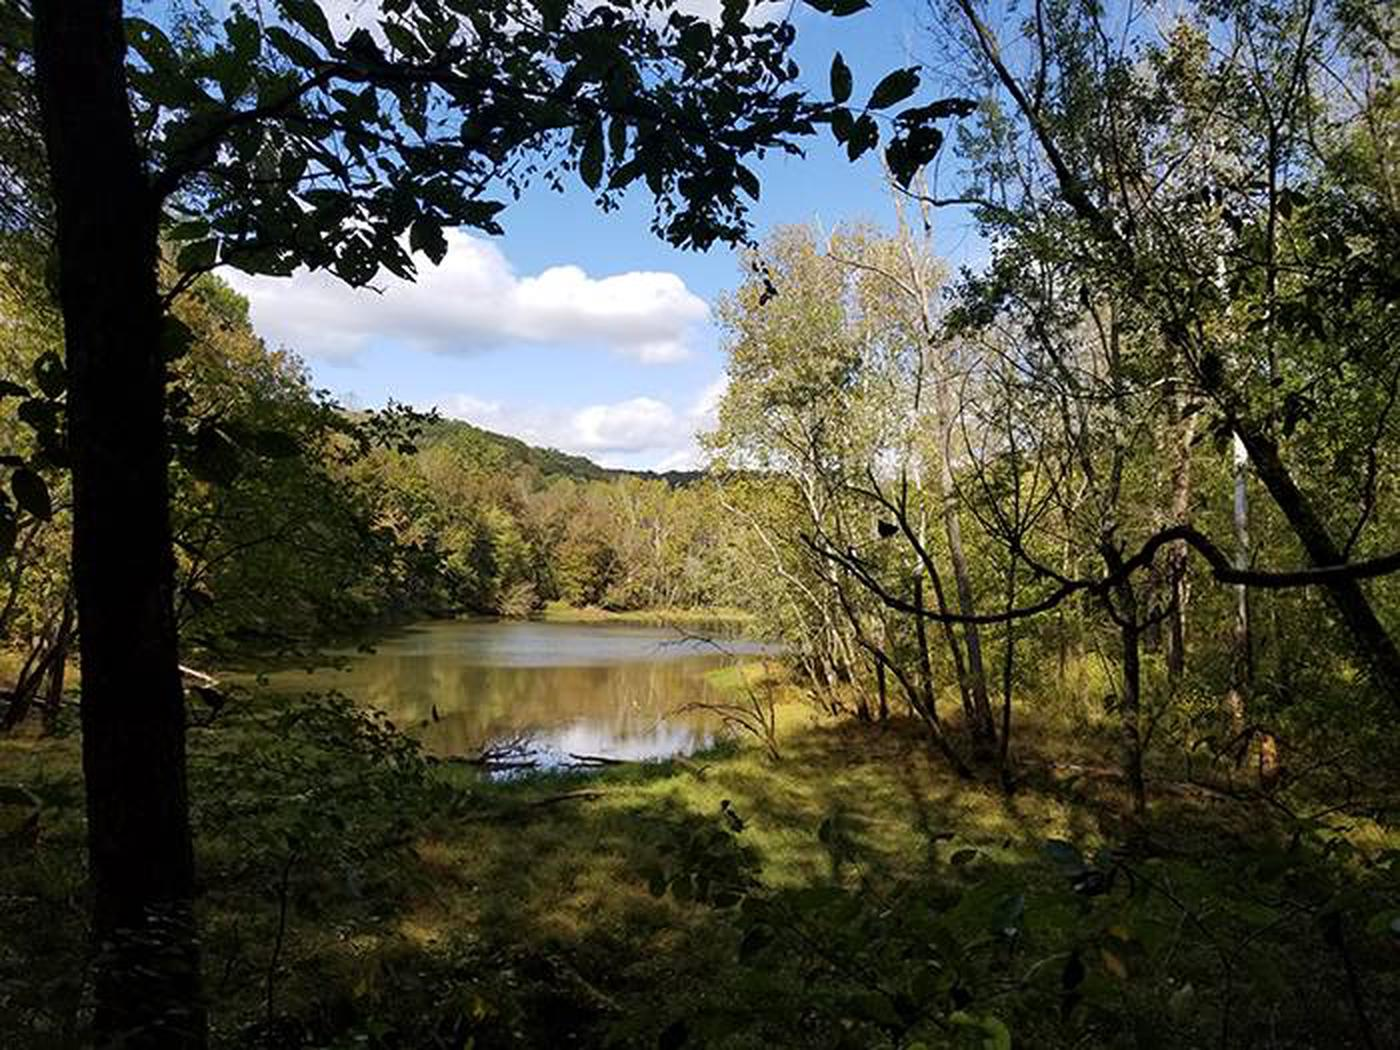 First Creek LakeScenic First Creek Lake located on the north side of the park, a more primitive experience at Mammoth Cave National Park.